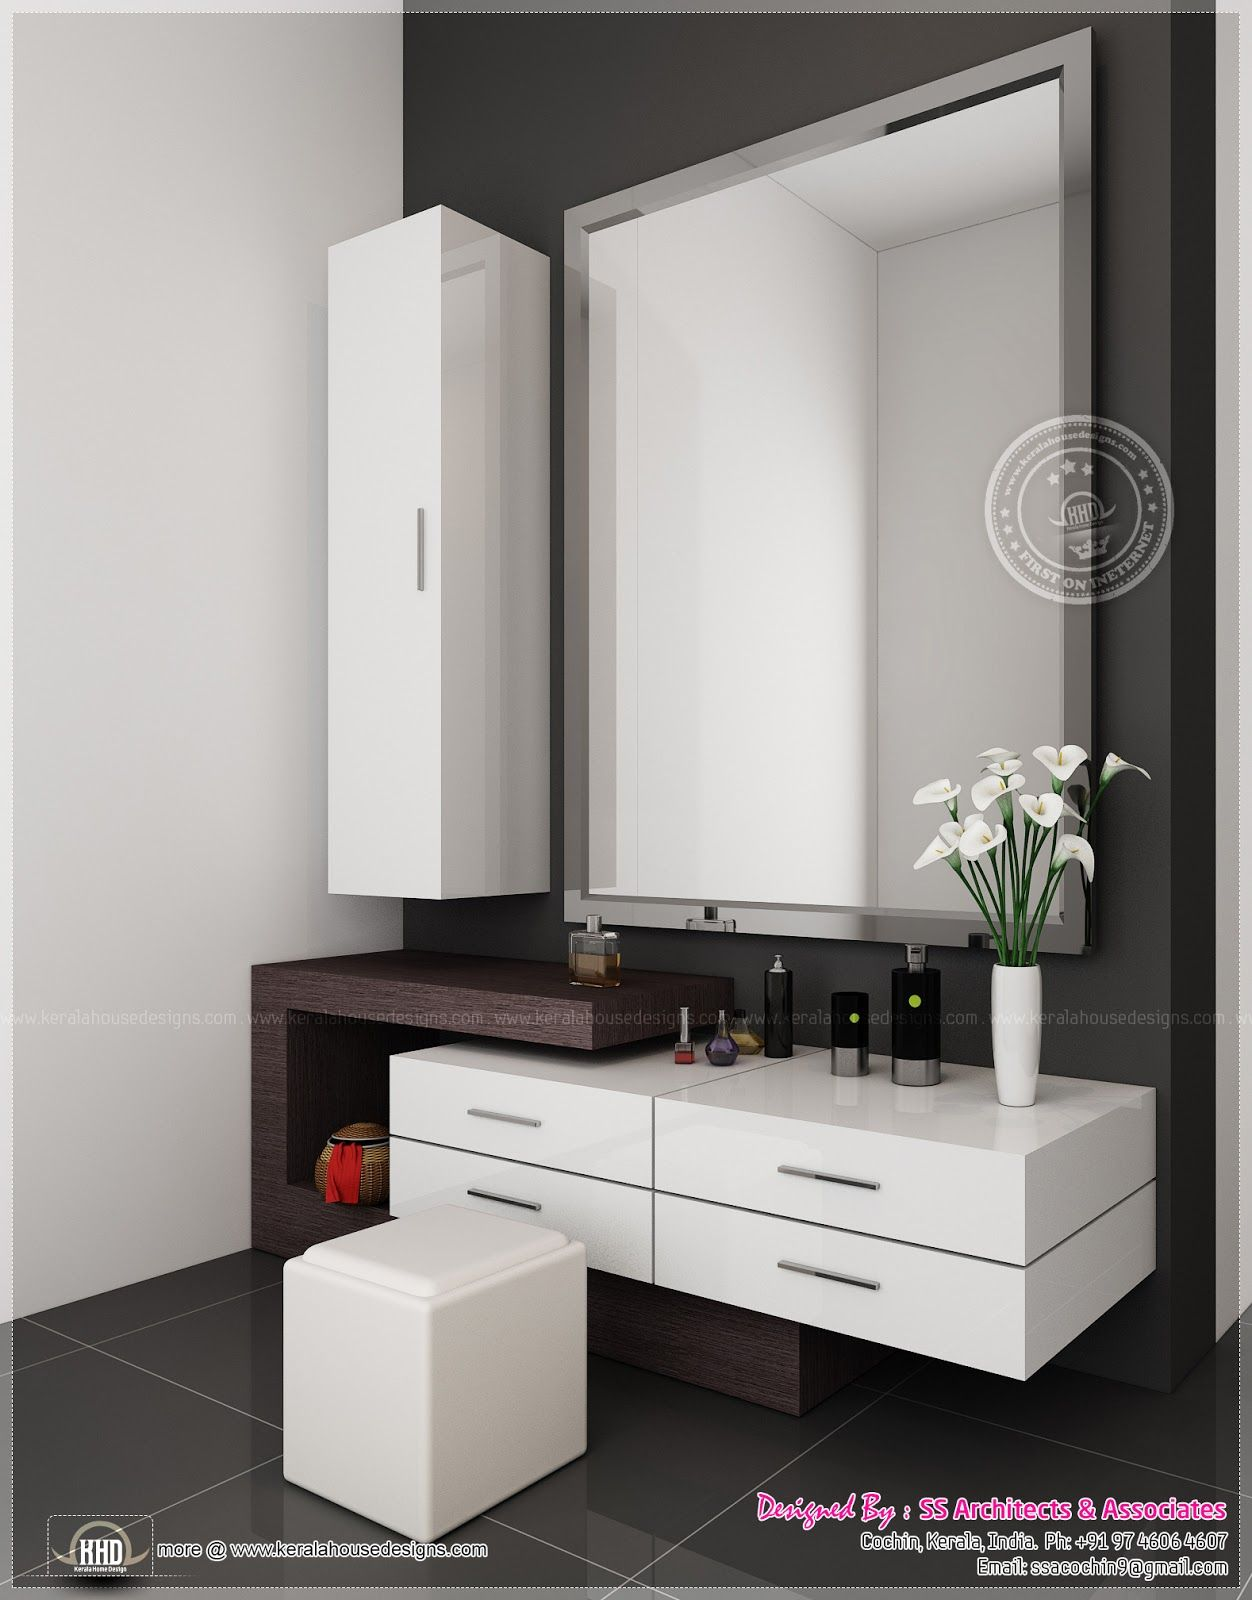 Modern bedroom dressing table with mirror - Cool Dressing Table Design Designs Small For Bedroom With Almirah Simple Full Length Mirror In Wood